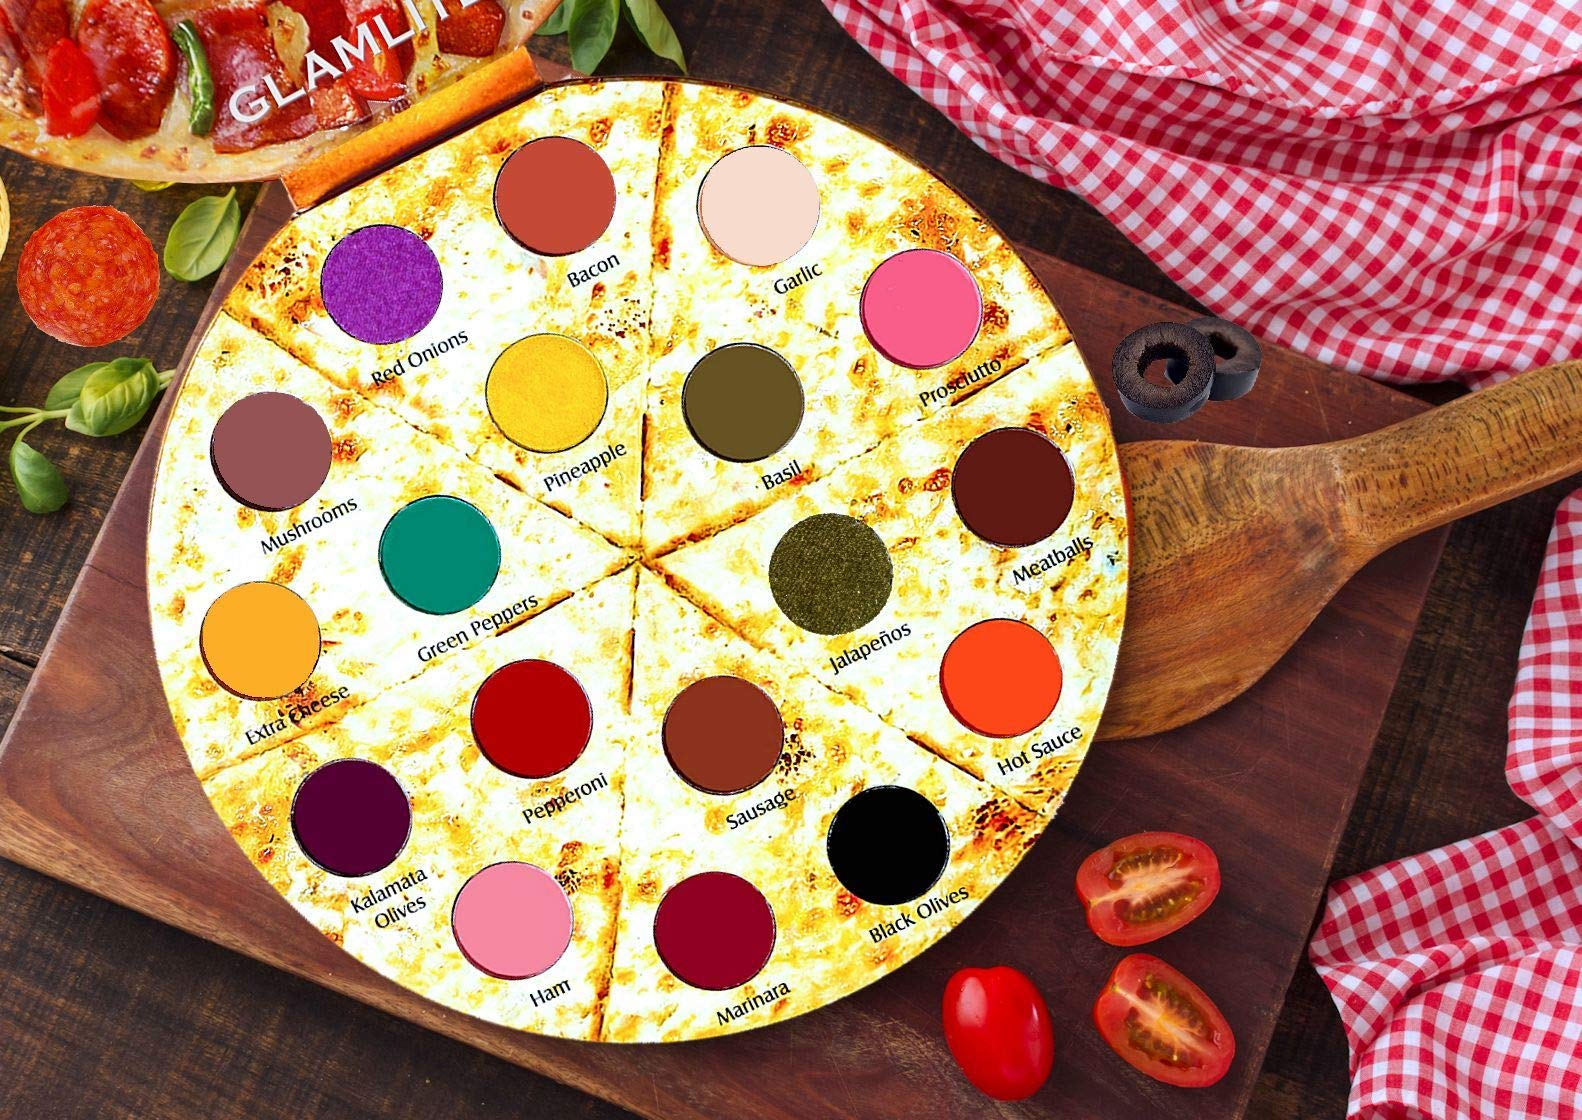 Glamlite Cosmetics Pizza Makeup Palette! 18 Shades Eyeshadow Palette with Unique Pizza Box Design! Best Gift Set!